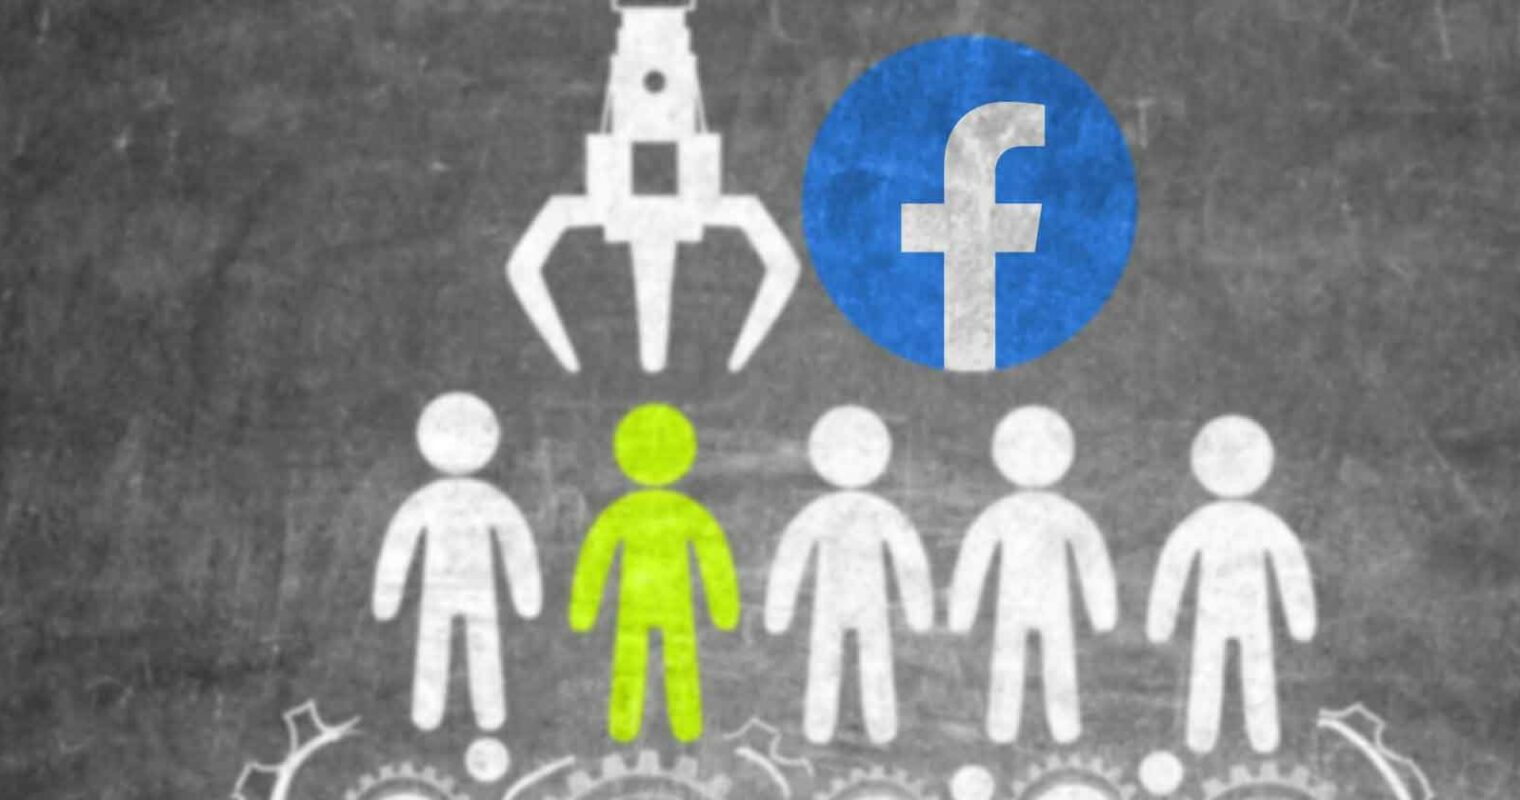 Facebook Update Will Target Specific Groups and Individuals